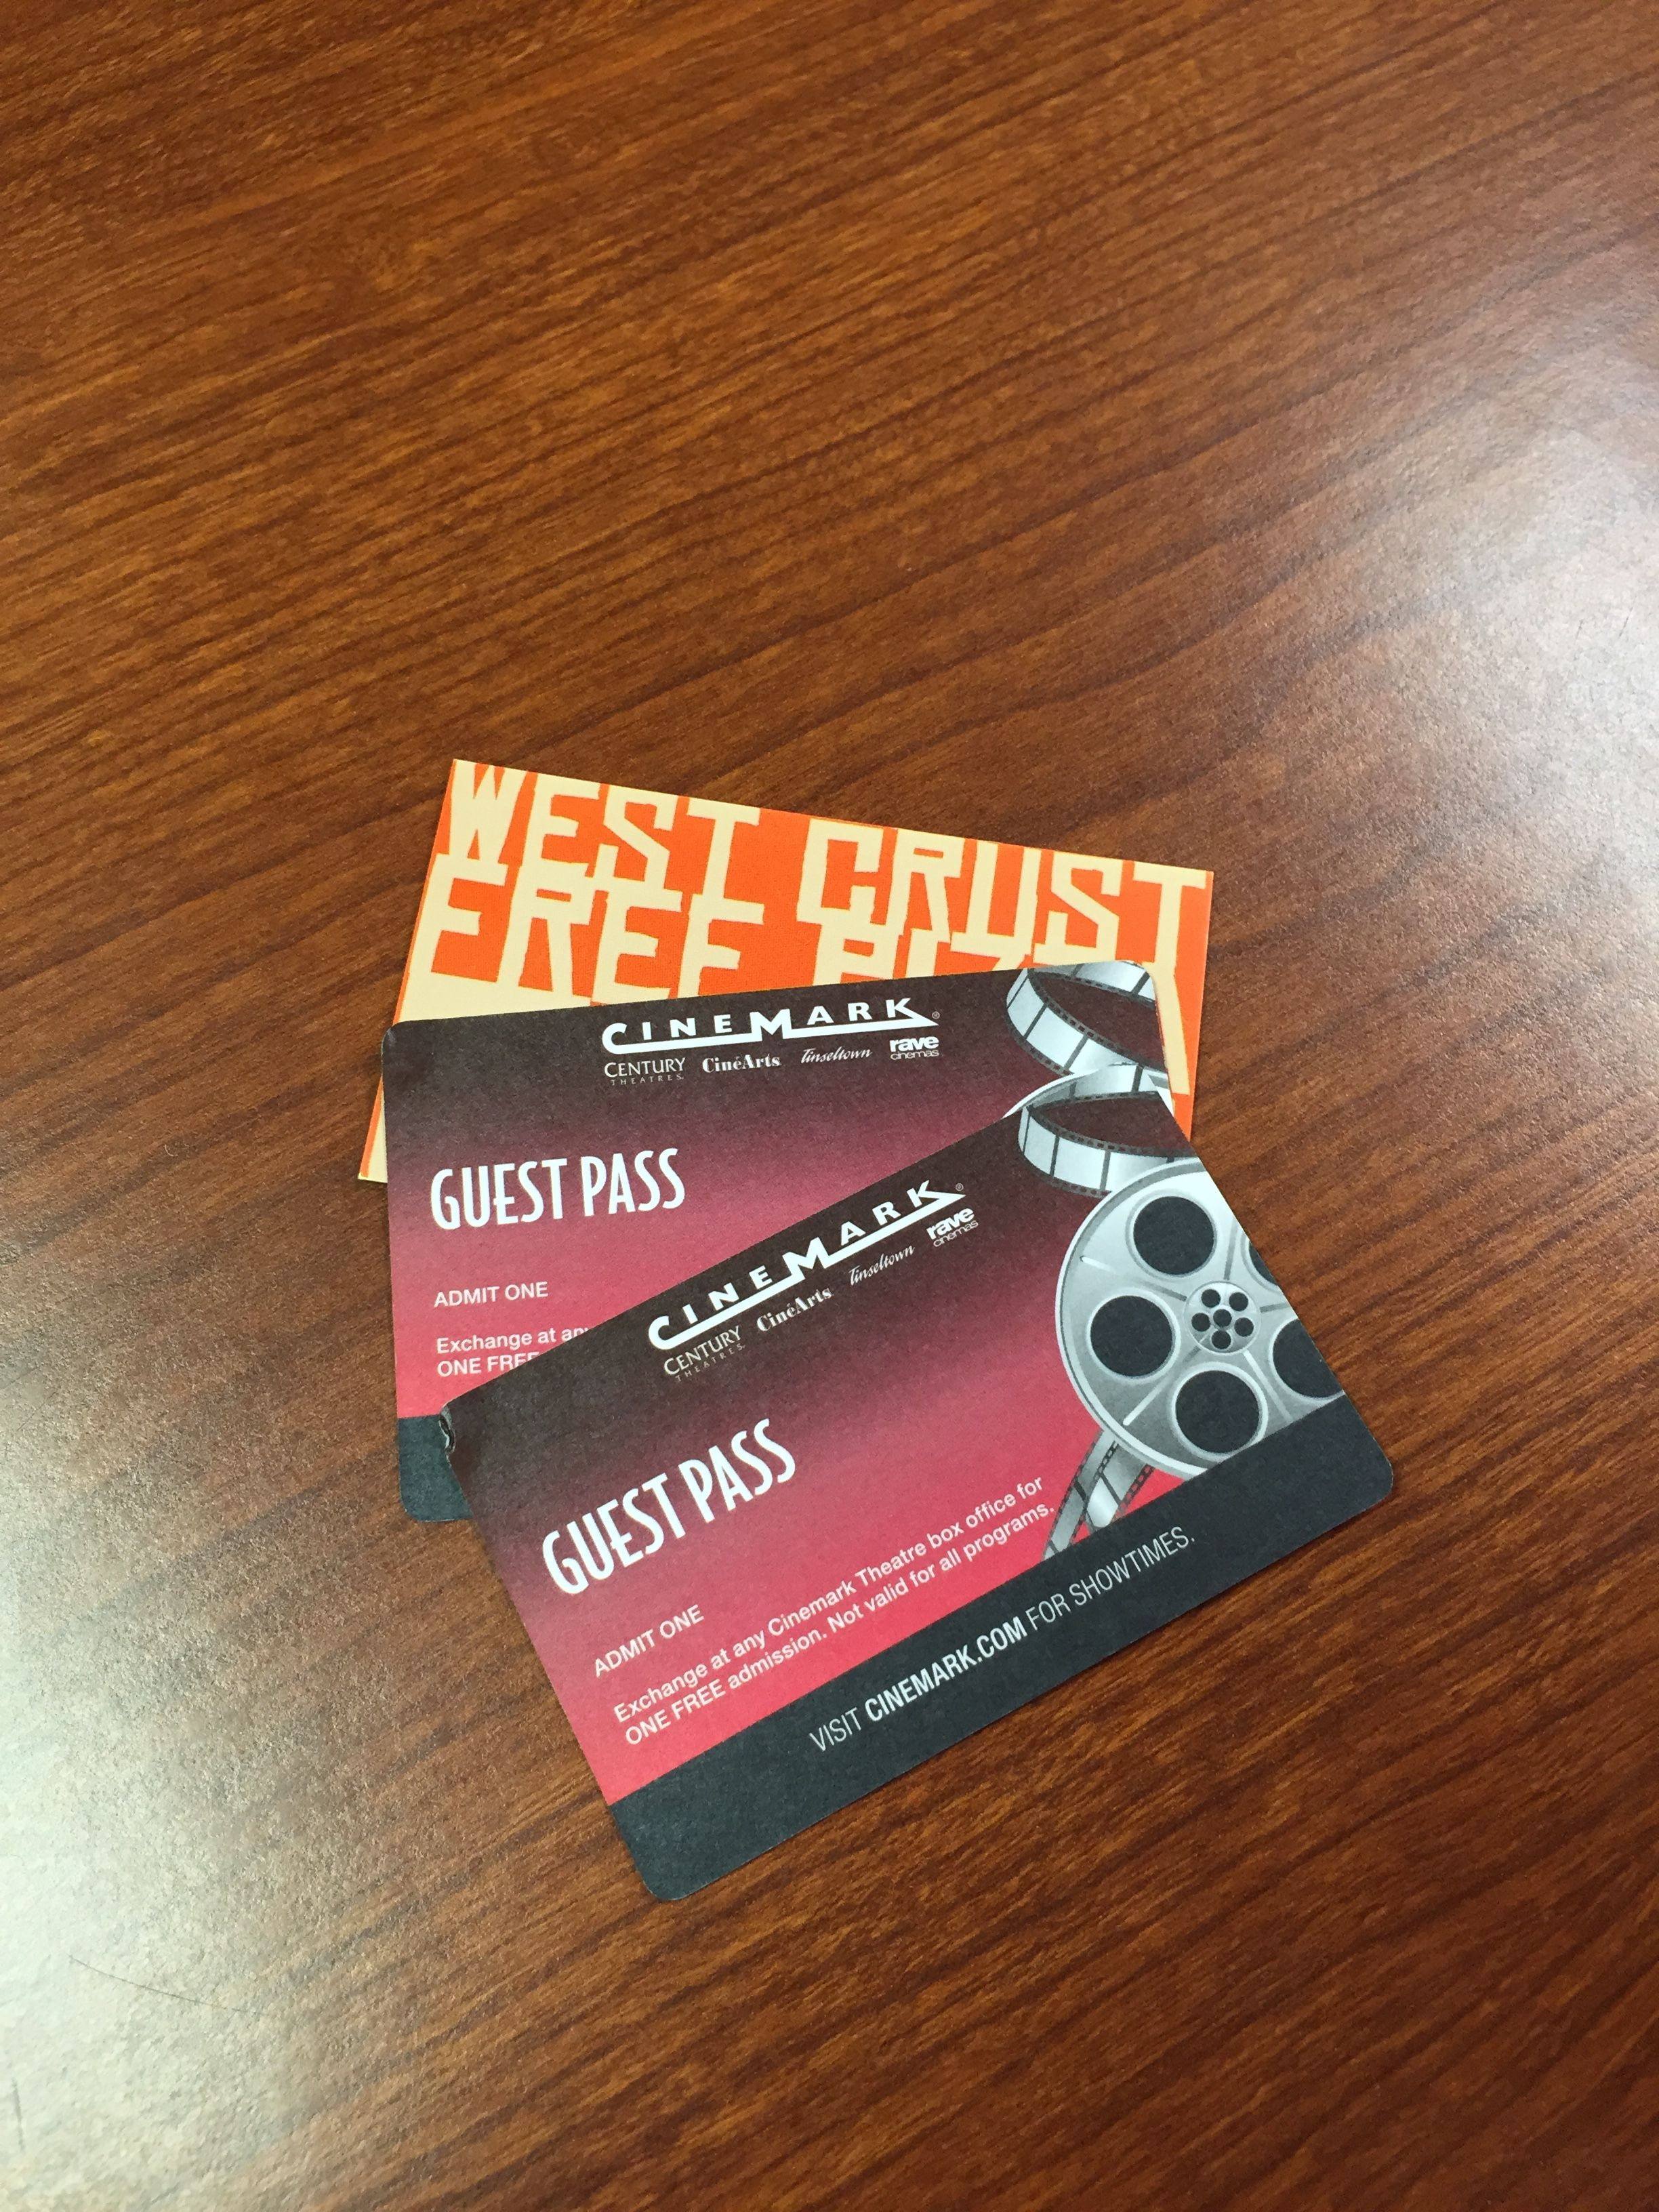 West Crust Pizza Coupon for one free large pizza and Two Free Movie Passes to Cinemark Theaters--Valued at $40.00--Bidding starts at $5.00